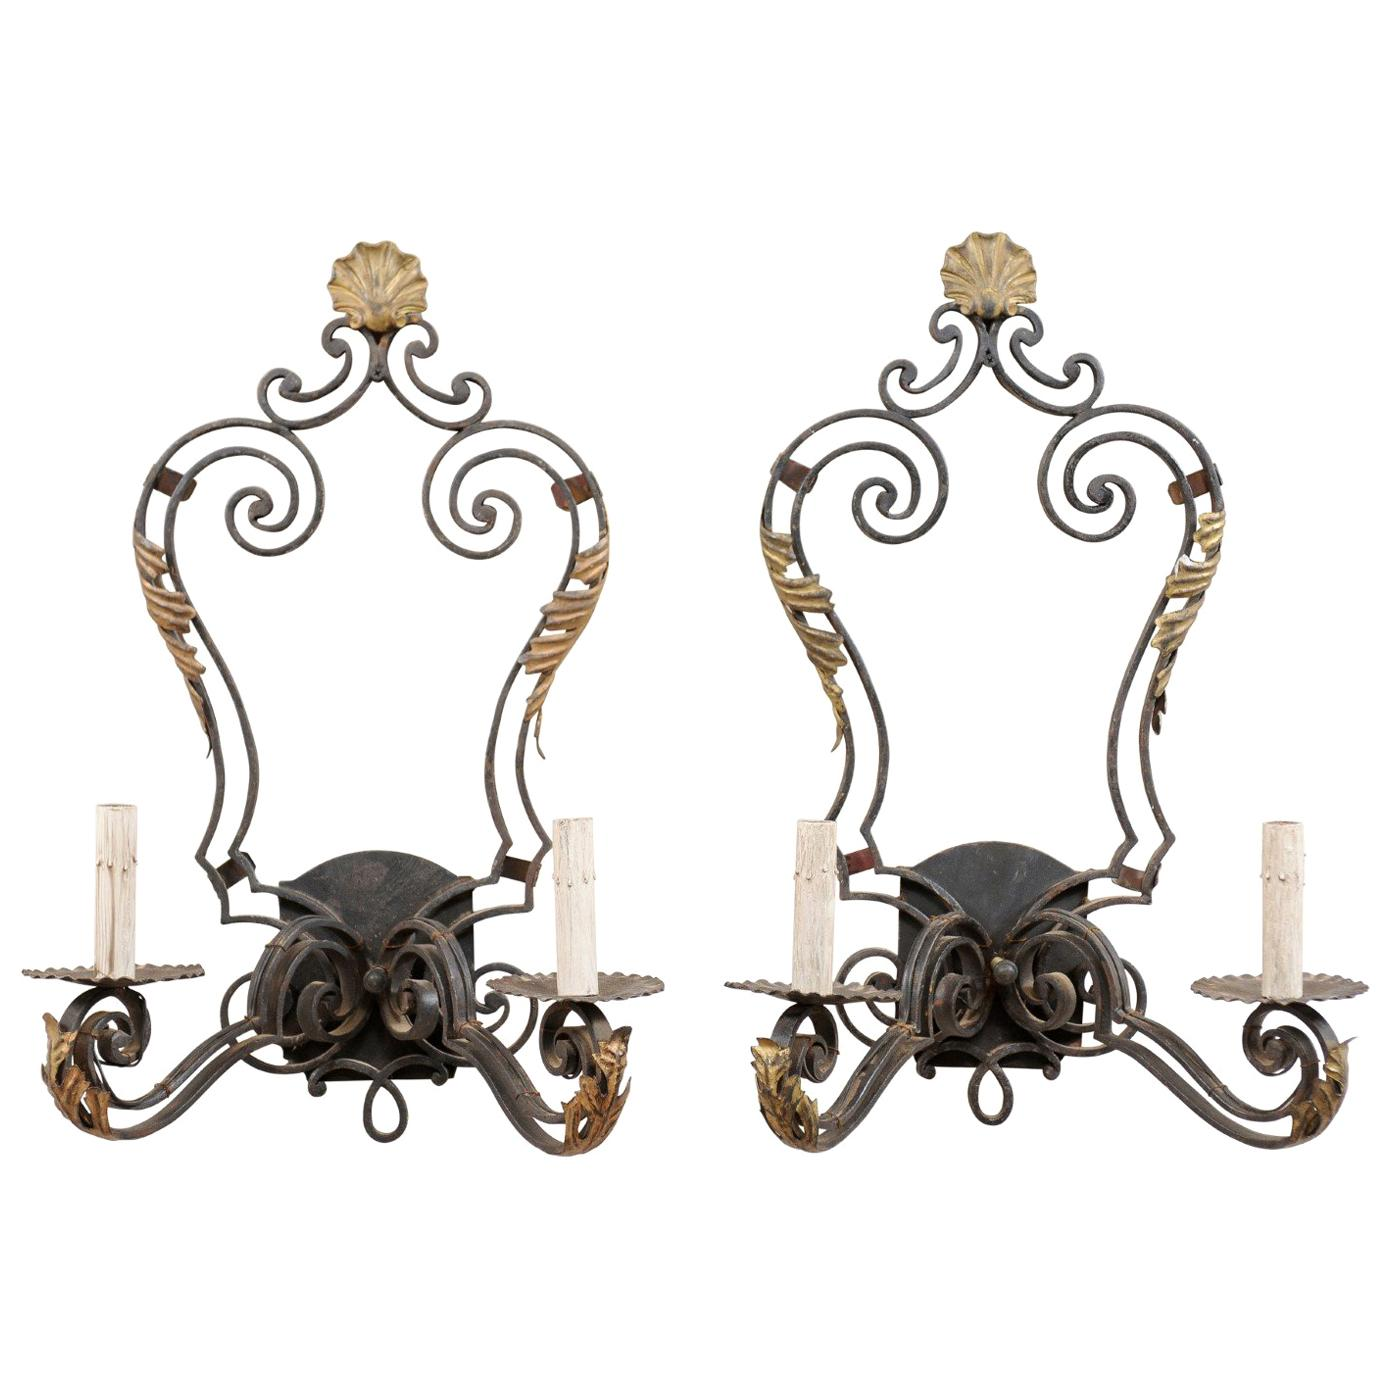 Pair of French Mid-20th Century Black and Gold Iron Sconces